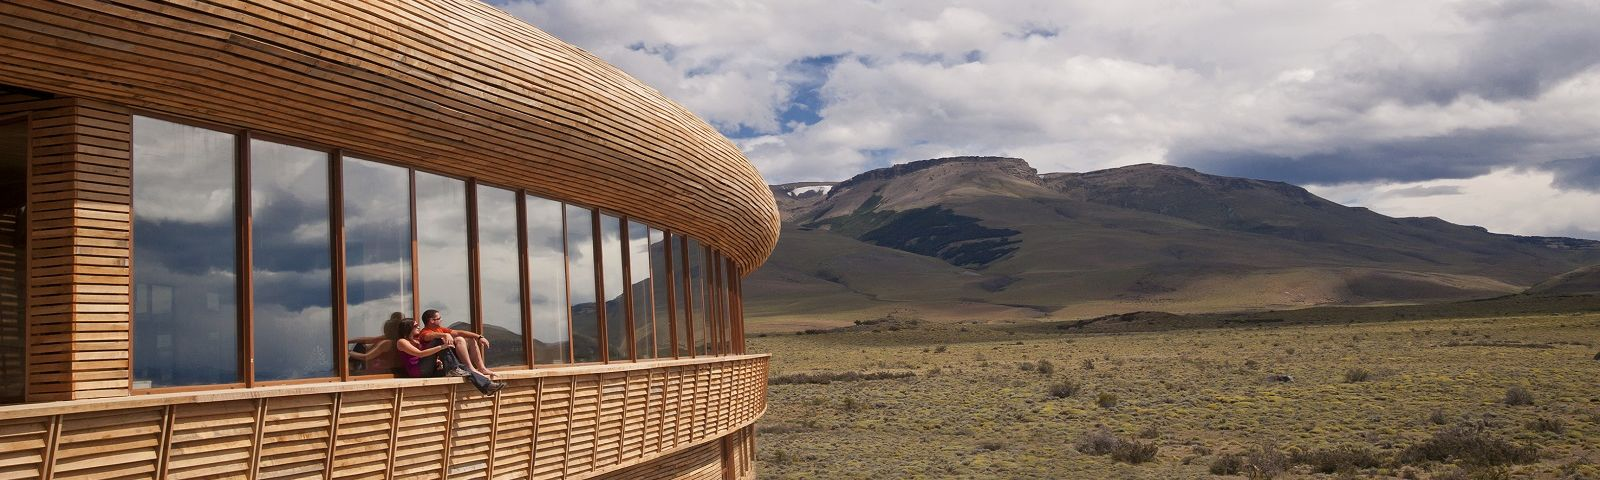 Enchanting Travels - Chile Tours - Torres del Paine - Patagonia - Tierra Patagonia - exteriores6